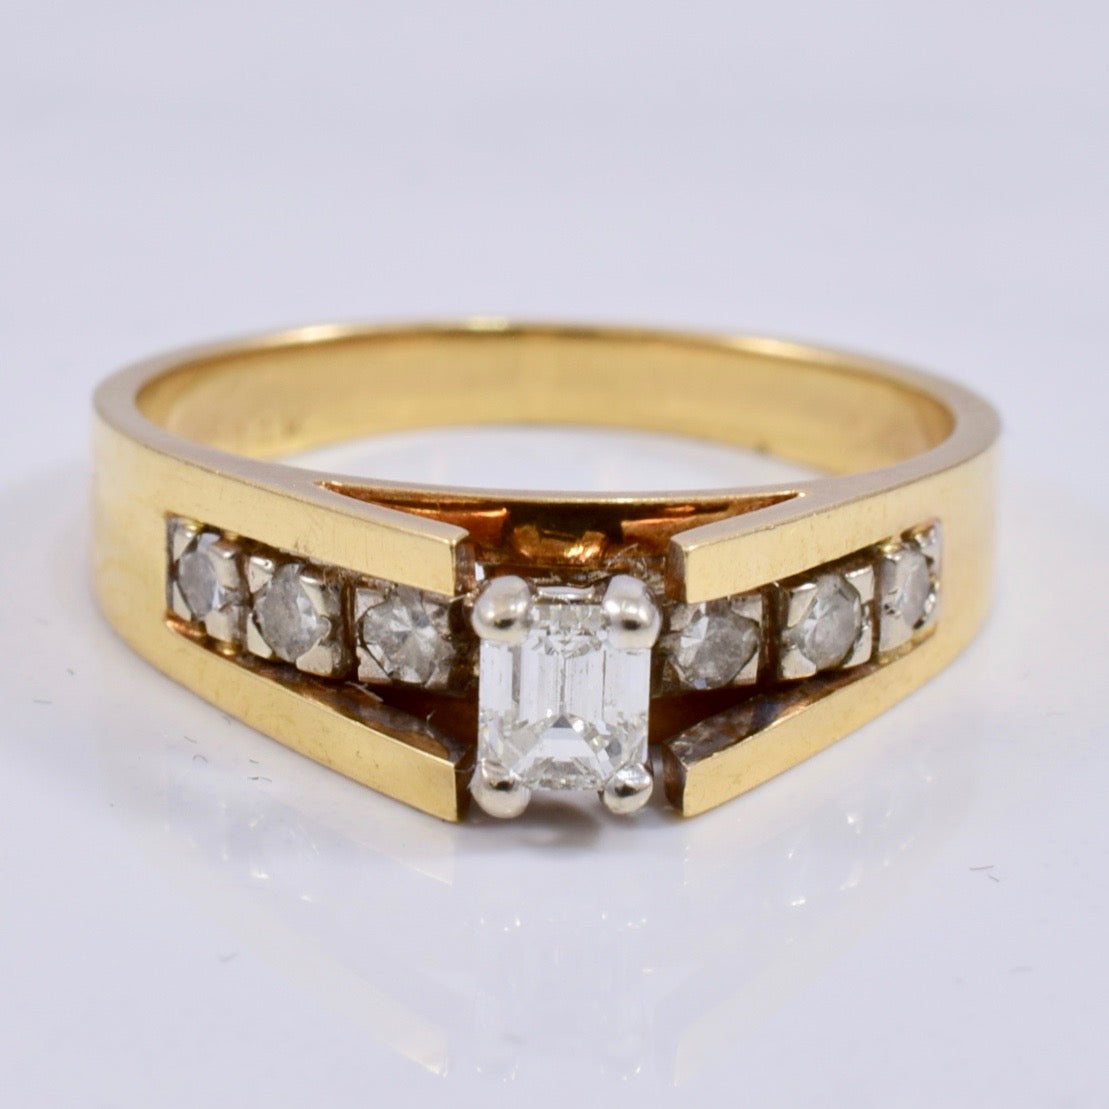 Emerald Cut Diamond Ring | 0.30 ctw SZ 6 |